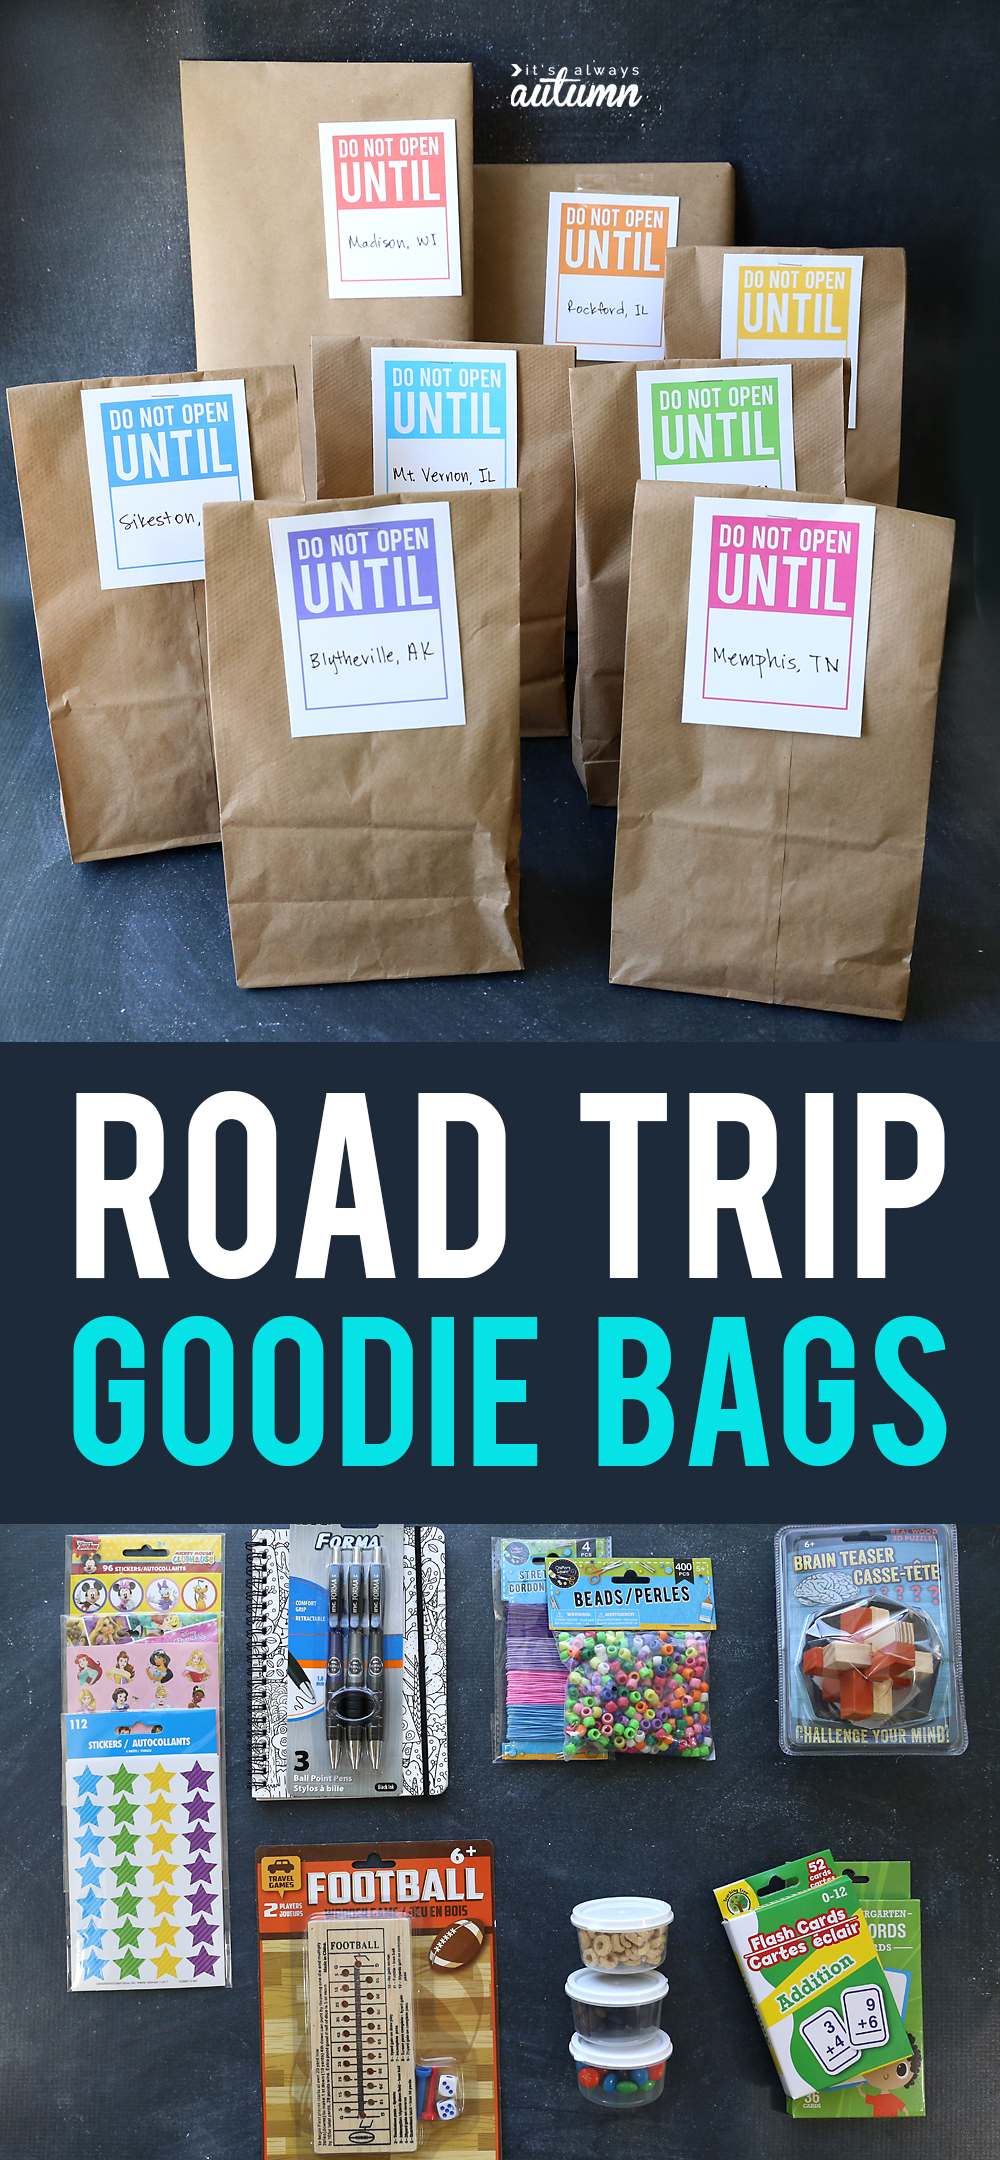 Count down a long car ride with road trip goodie bags! Let kids open one each hour to make the trip more fun. Click through for 30 things to put inside them.